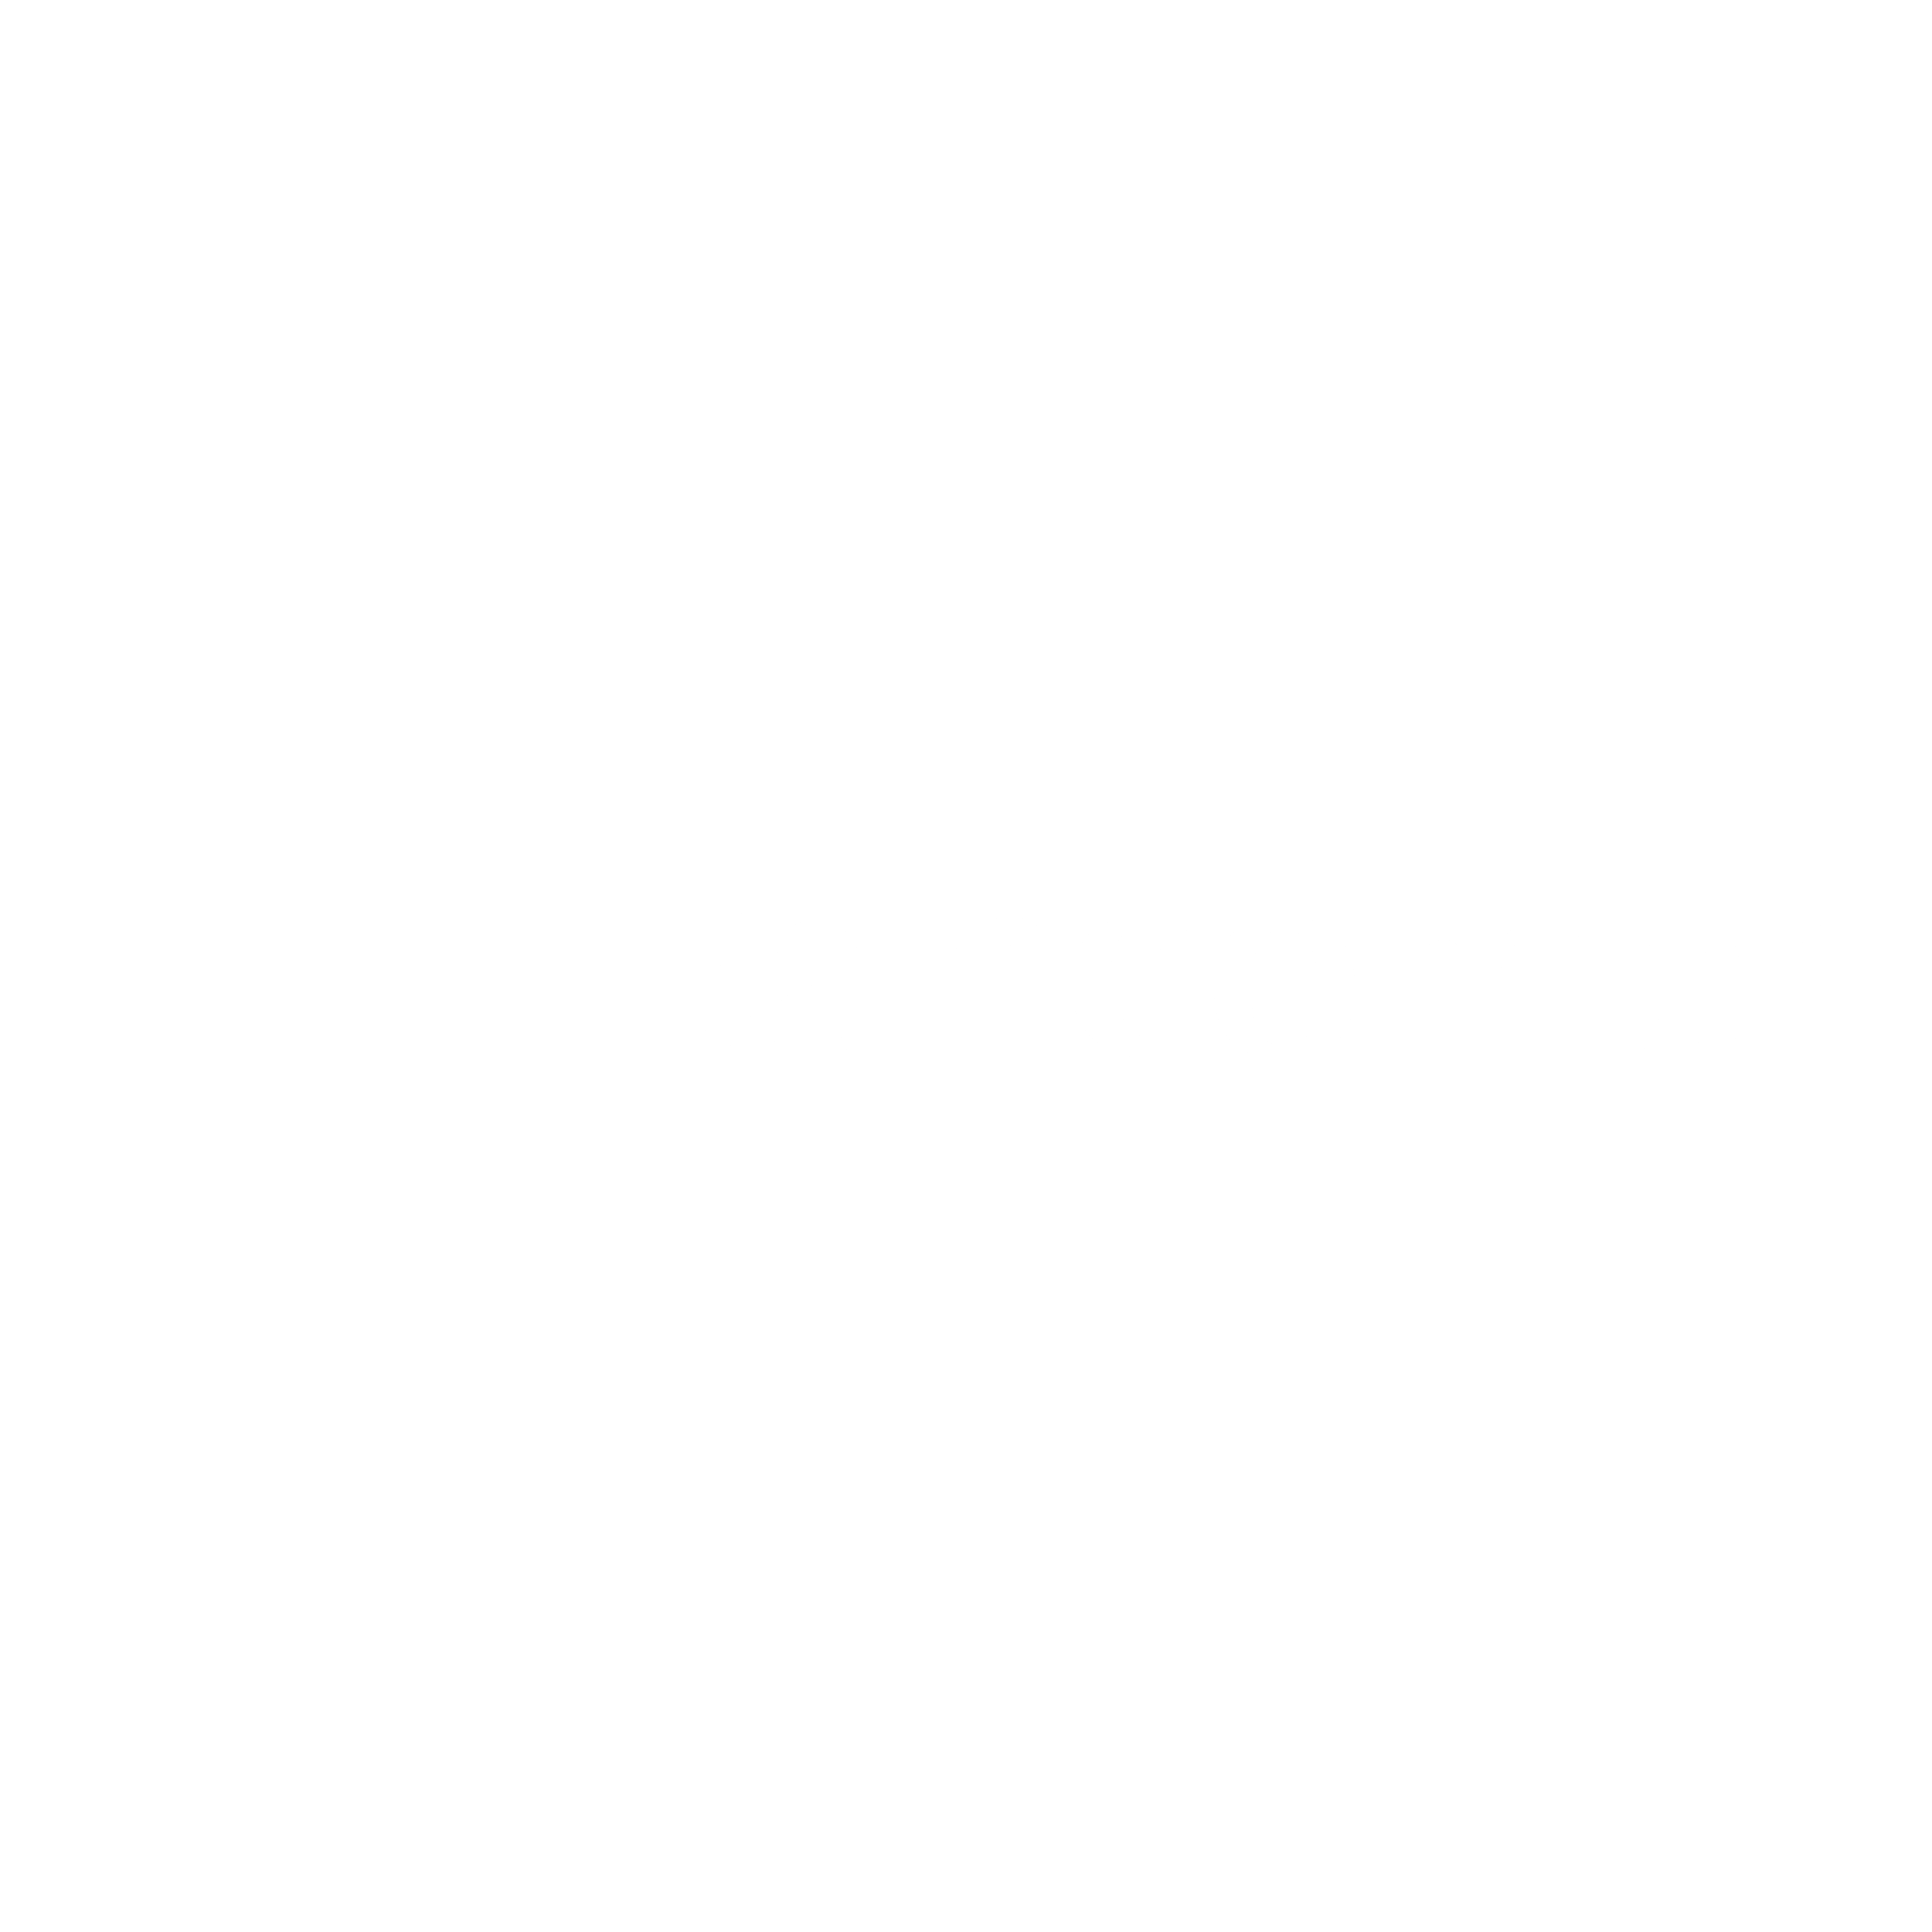 BBVA Bancomer 01 Logo Black And White